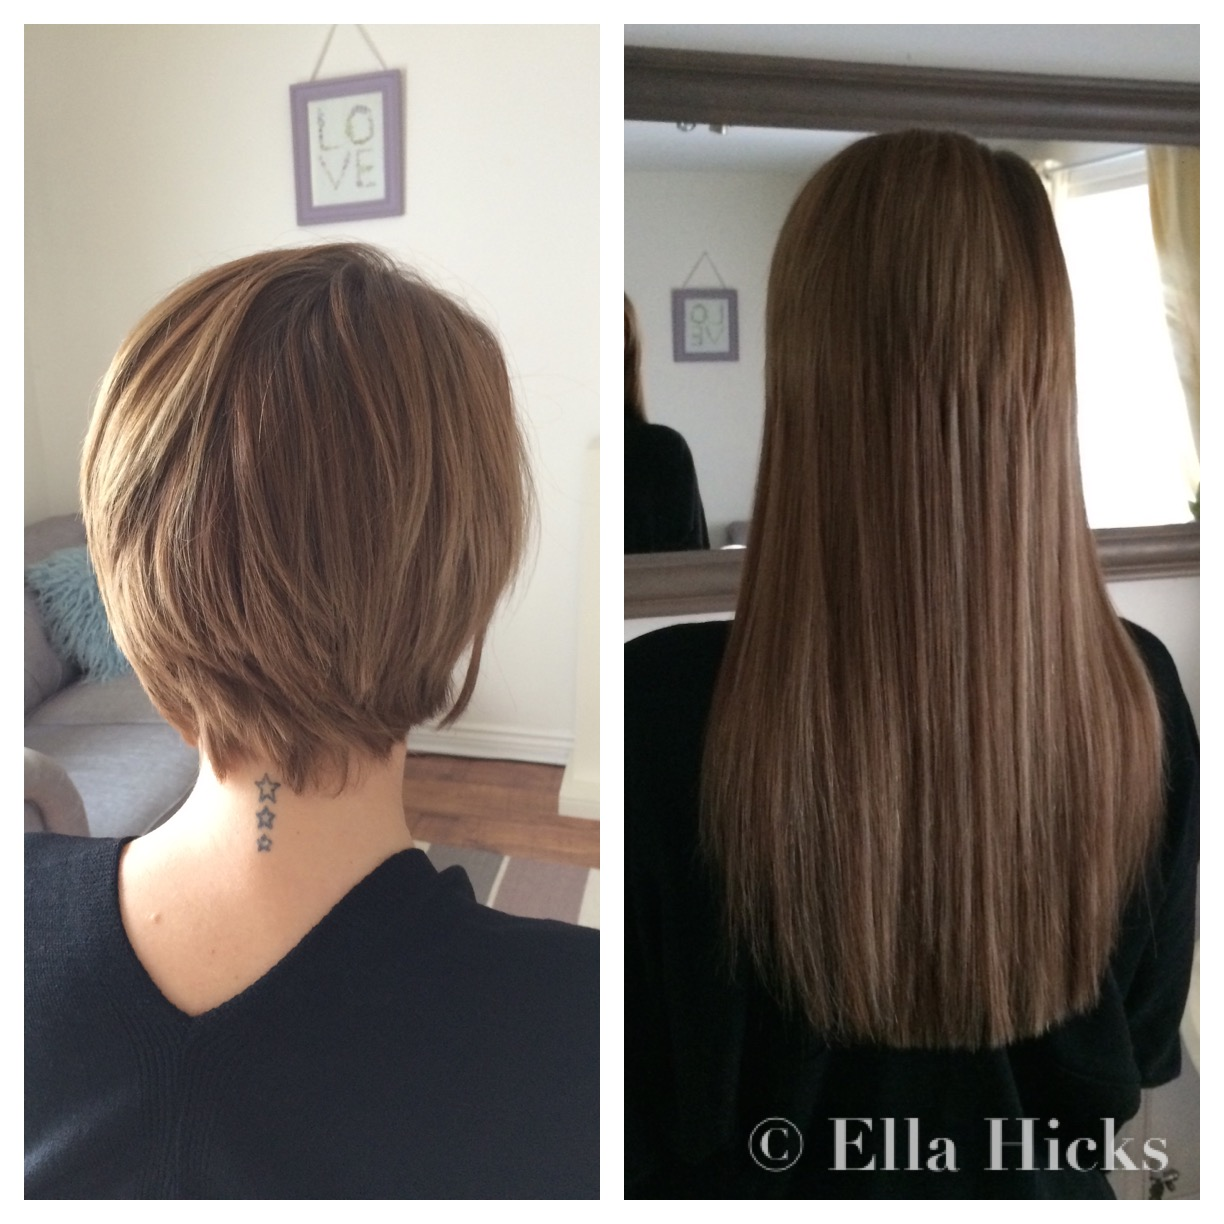 Ella hicks hair extensions portfolio 8 micro ring hair extensions pmusecretfo Images